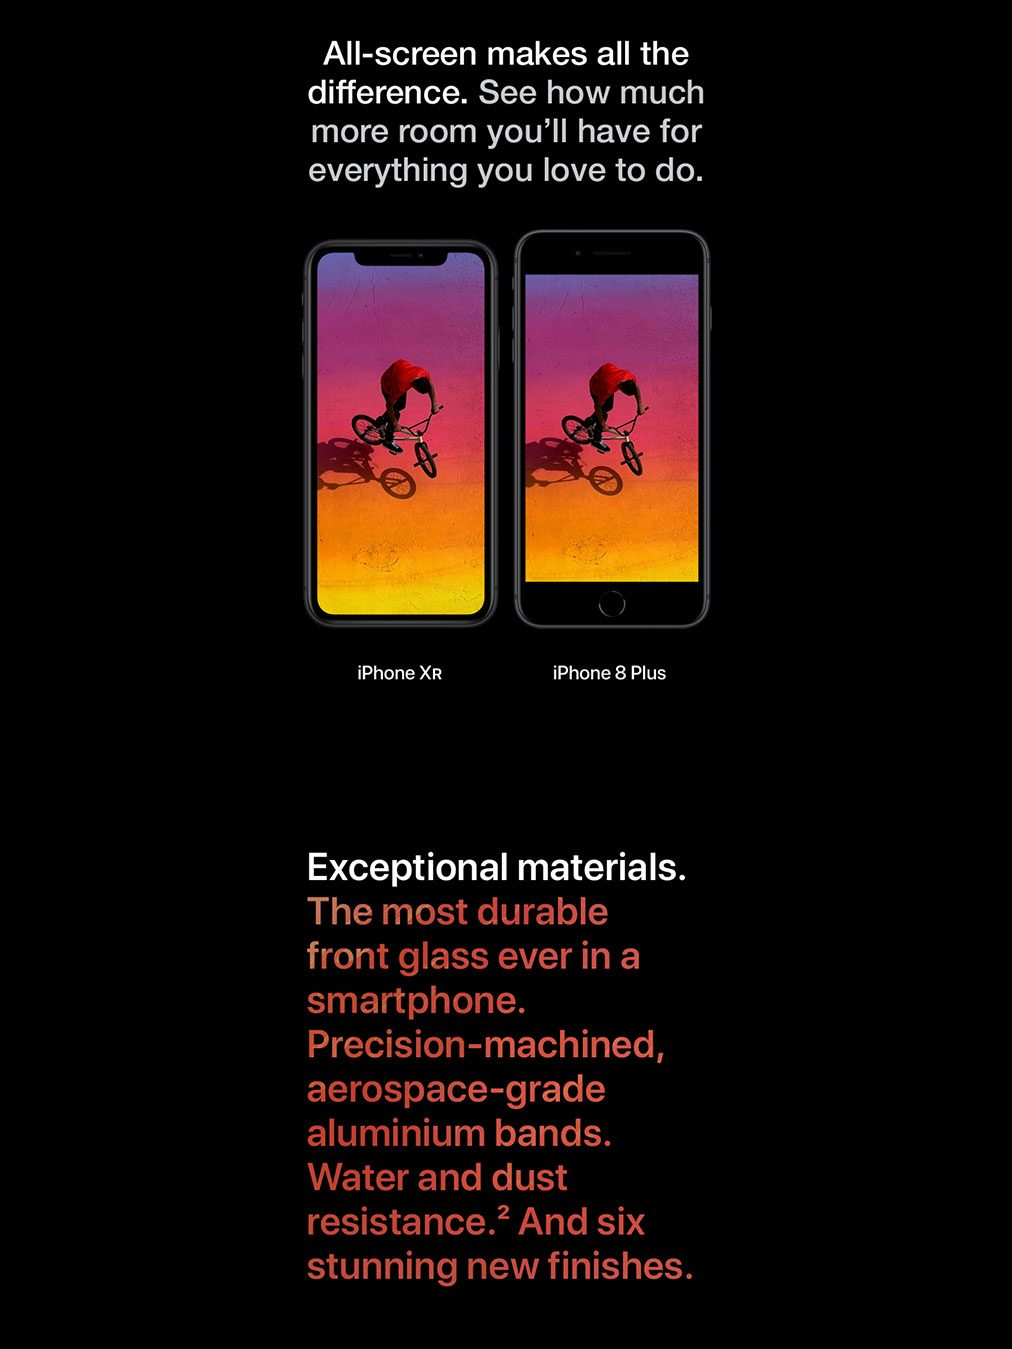 iPhone XR. Exceptional materials.